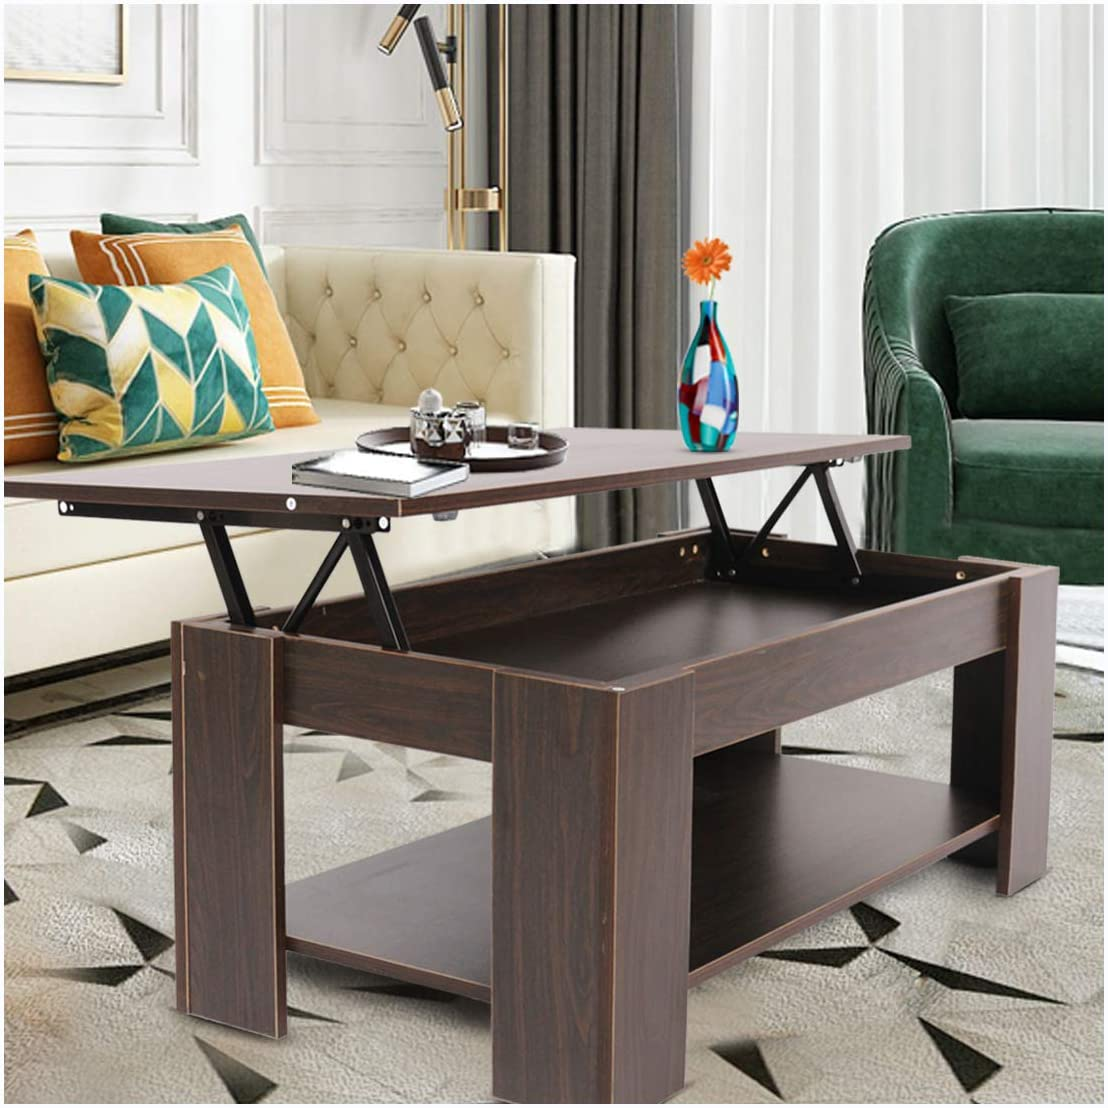 WoodPod Adjustable Lift Top Coffee Table with Pop-Up Hidden Compartment and Storage Shelves, Cocktail Table for Living Room and Reception Room, Espresso Brown